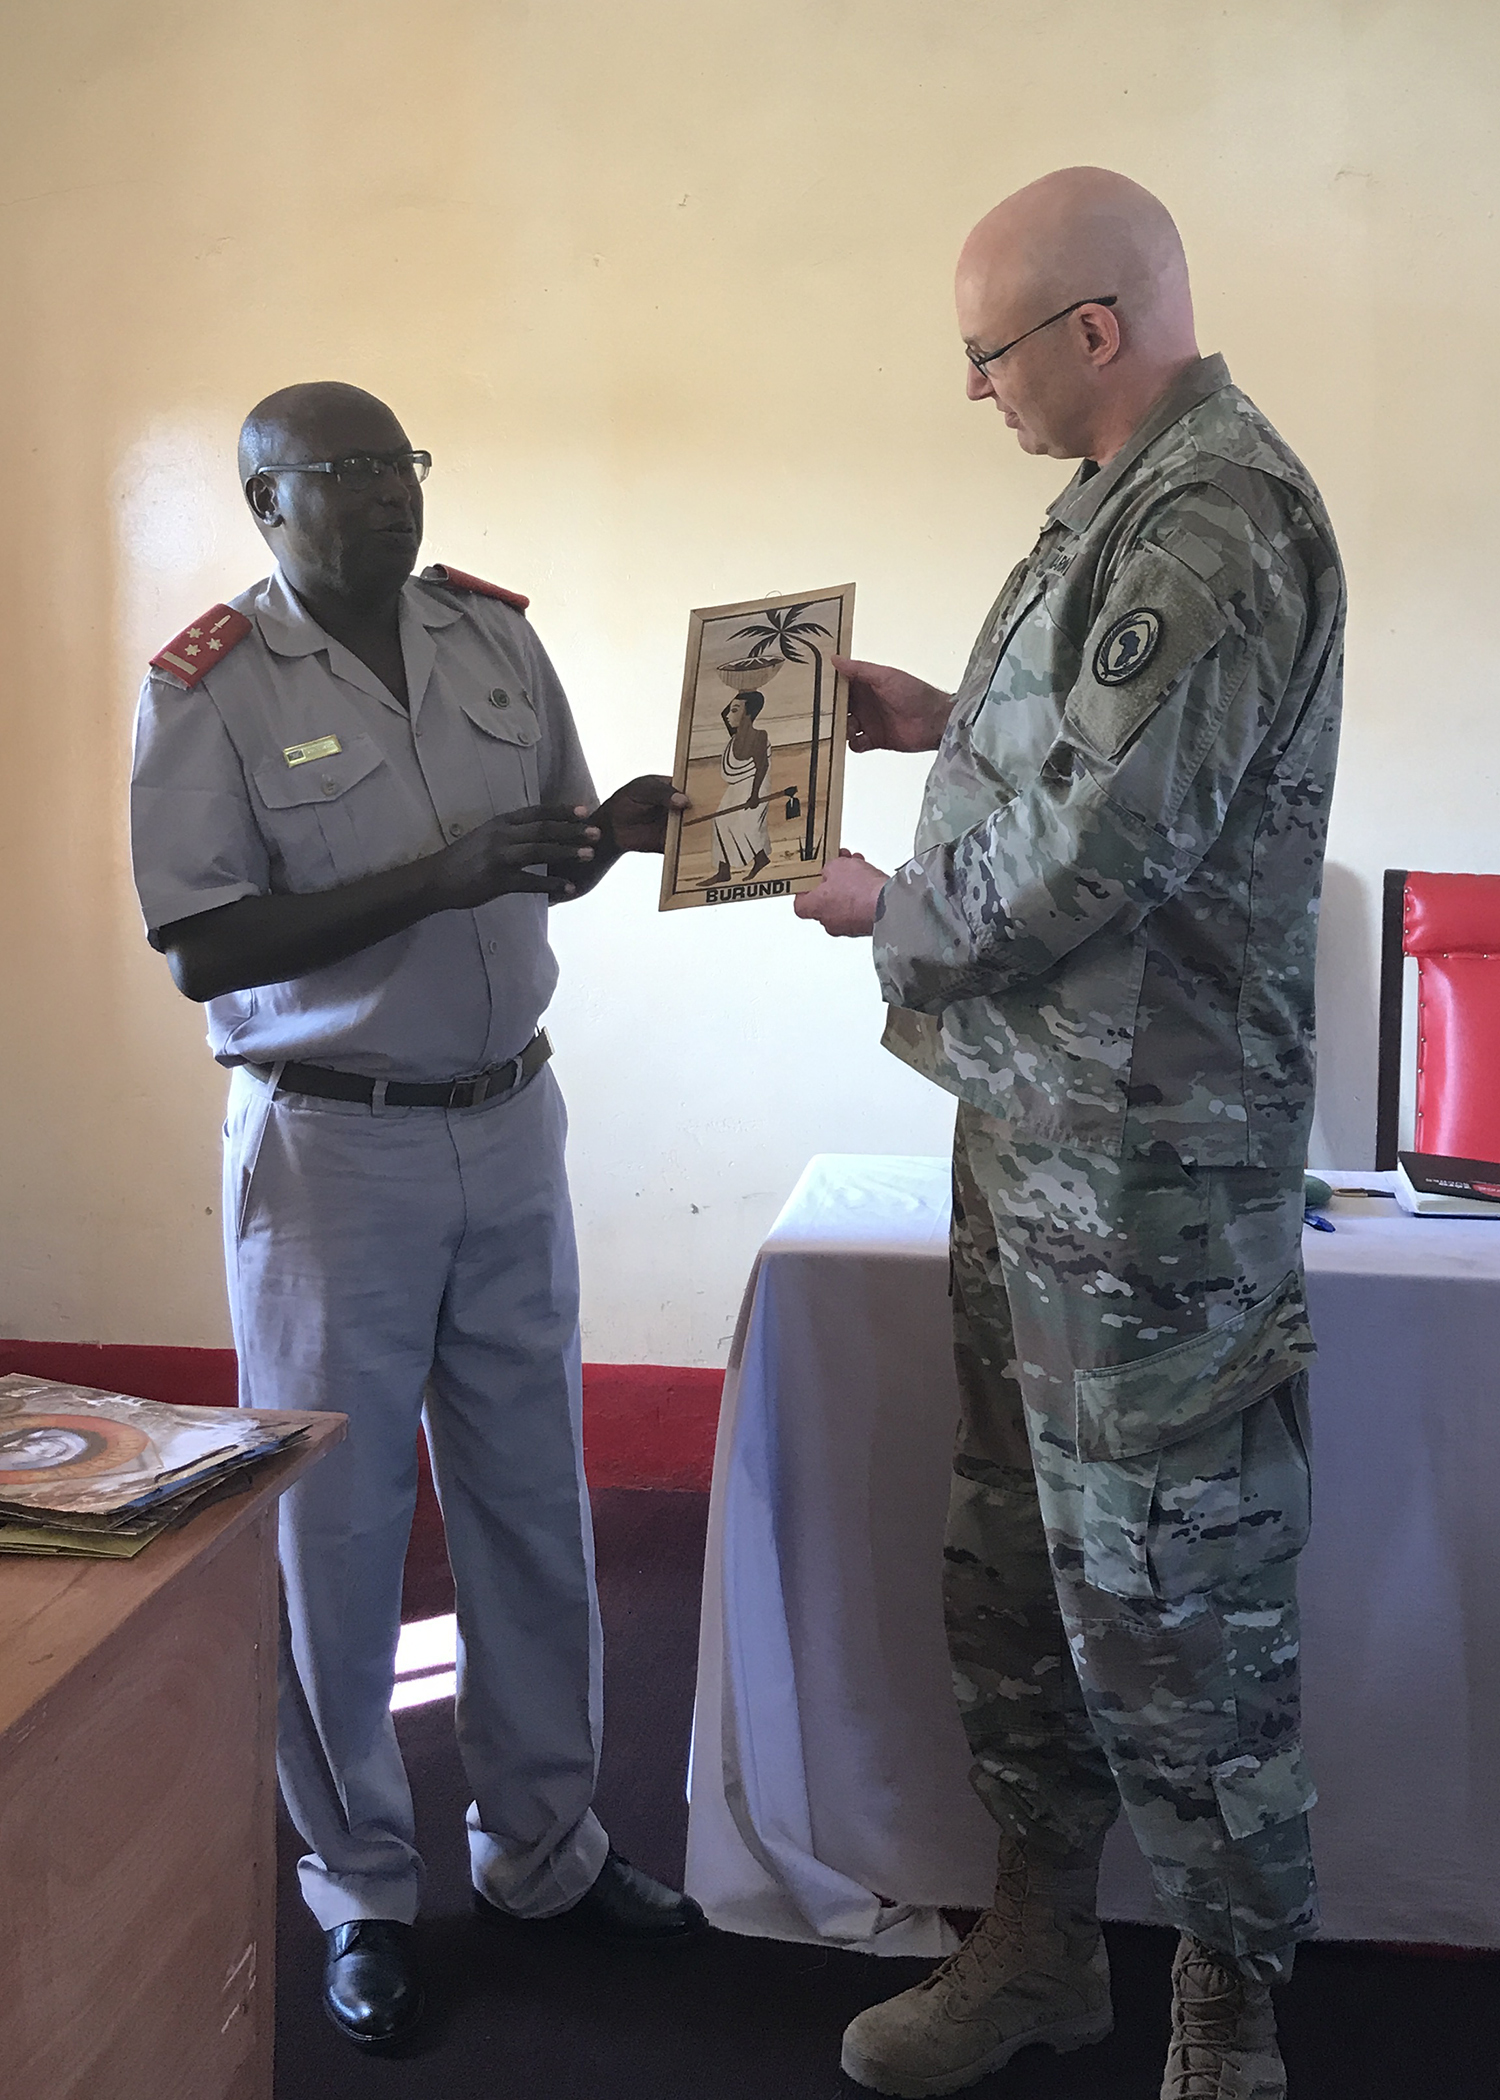 U.S. Army Lt. Col. Steve Gerber, a Maryland Army National Guard member mobilized as the Combined Joint Task Force-Horn of Africa information operations chief, participates in a gift exchange with Burundi National Defence Force Col. C Ntacebera, commandant of the Senior Command and Staff College (SCSC), in Kinanira, Burundi, May 17, 2019.  Gerber was part of a four-person team of CJTF-HOA service members who visited Burundi to discuss best practices with the Burundi SCSC students. (Courtesy Photo)